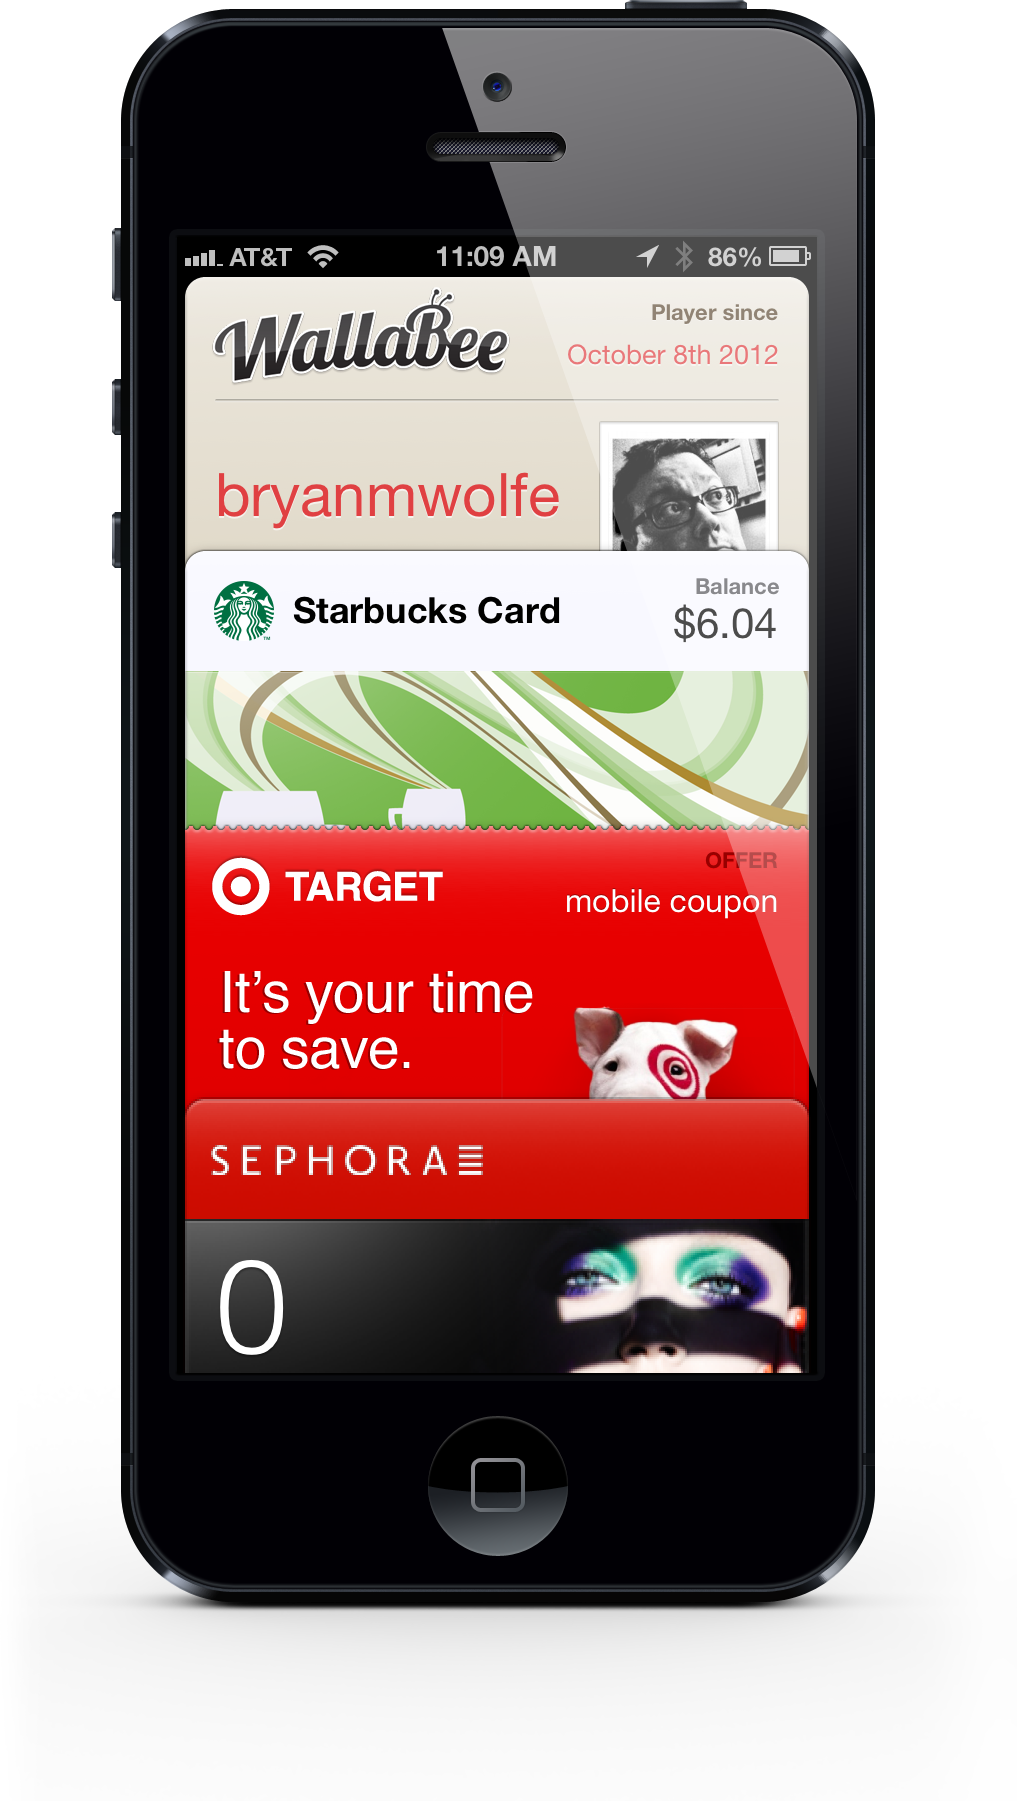 WallaBee Becomes The First iOS Game To Offer Passbook Integration